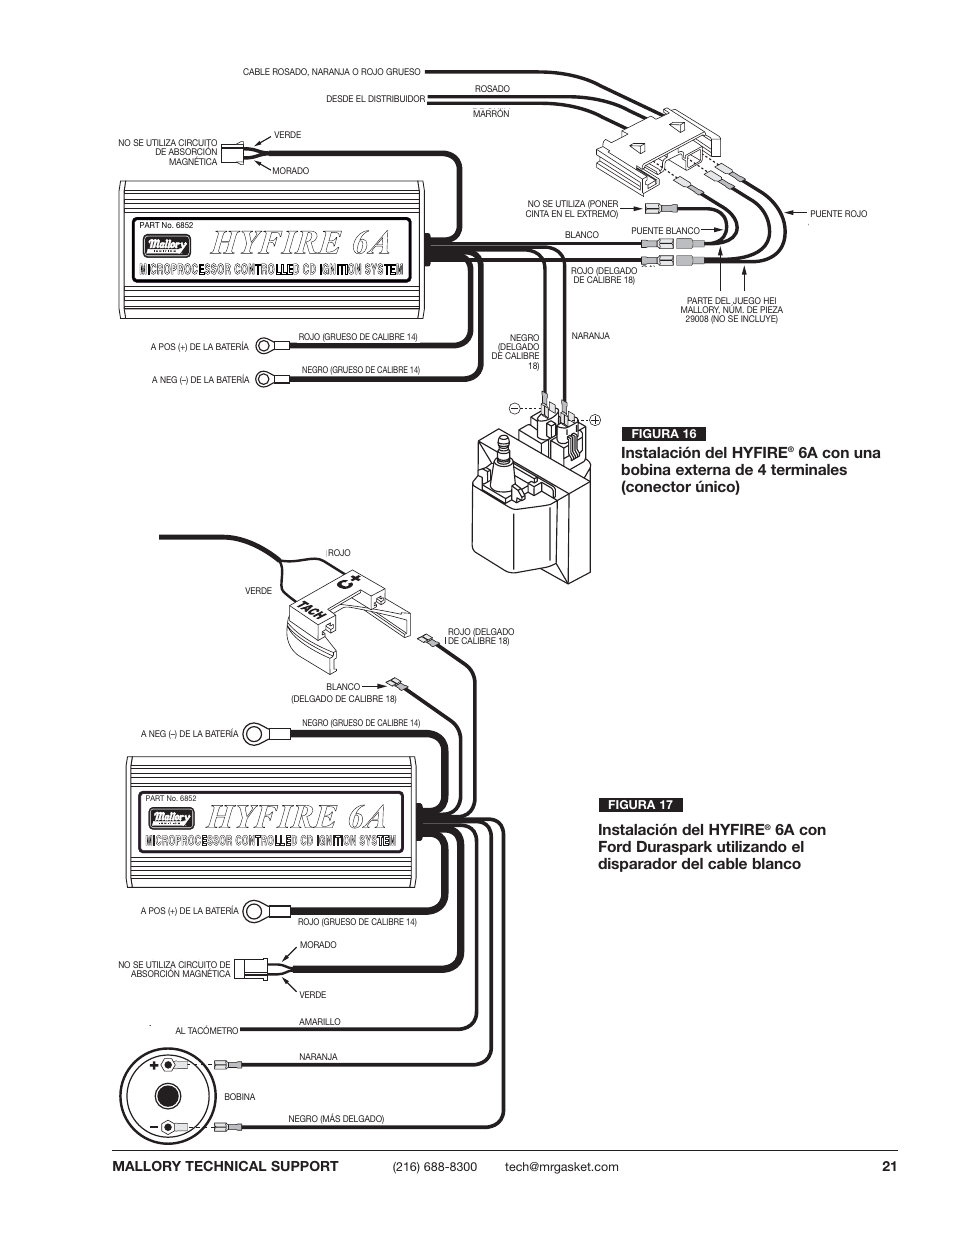 Mallory 5048201 Wiring Diagram - Wiring Diagrams Show on